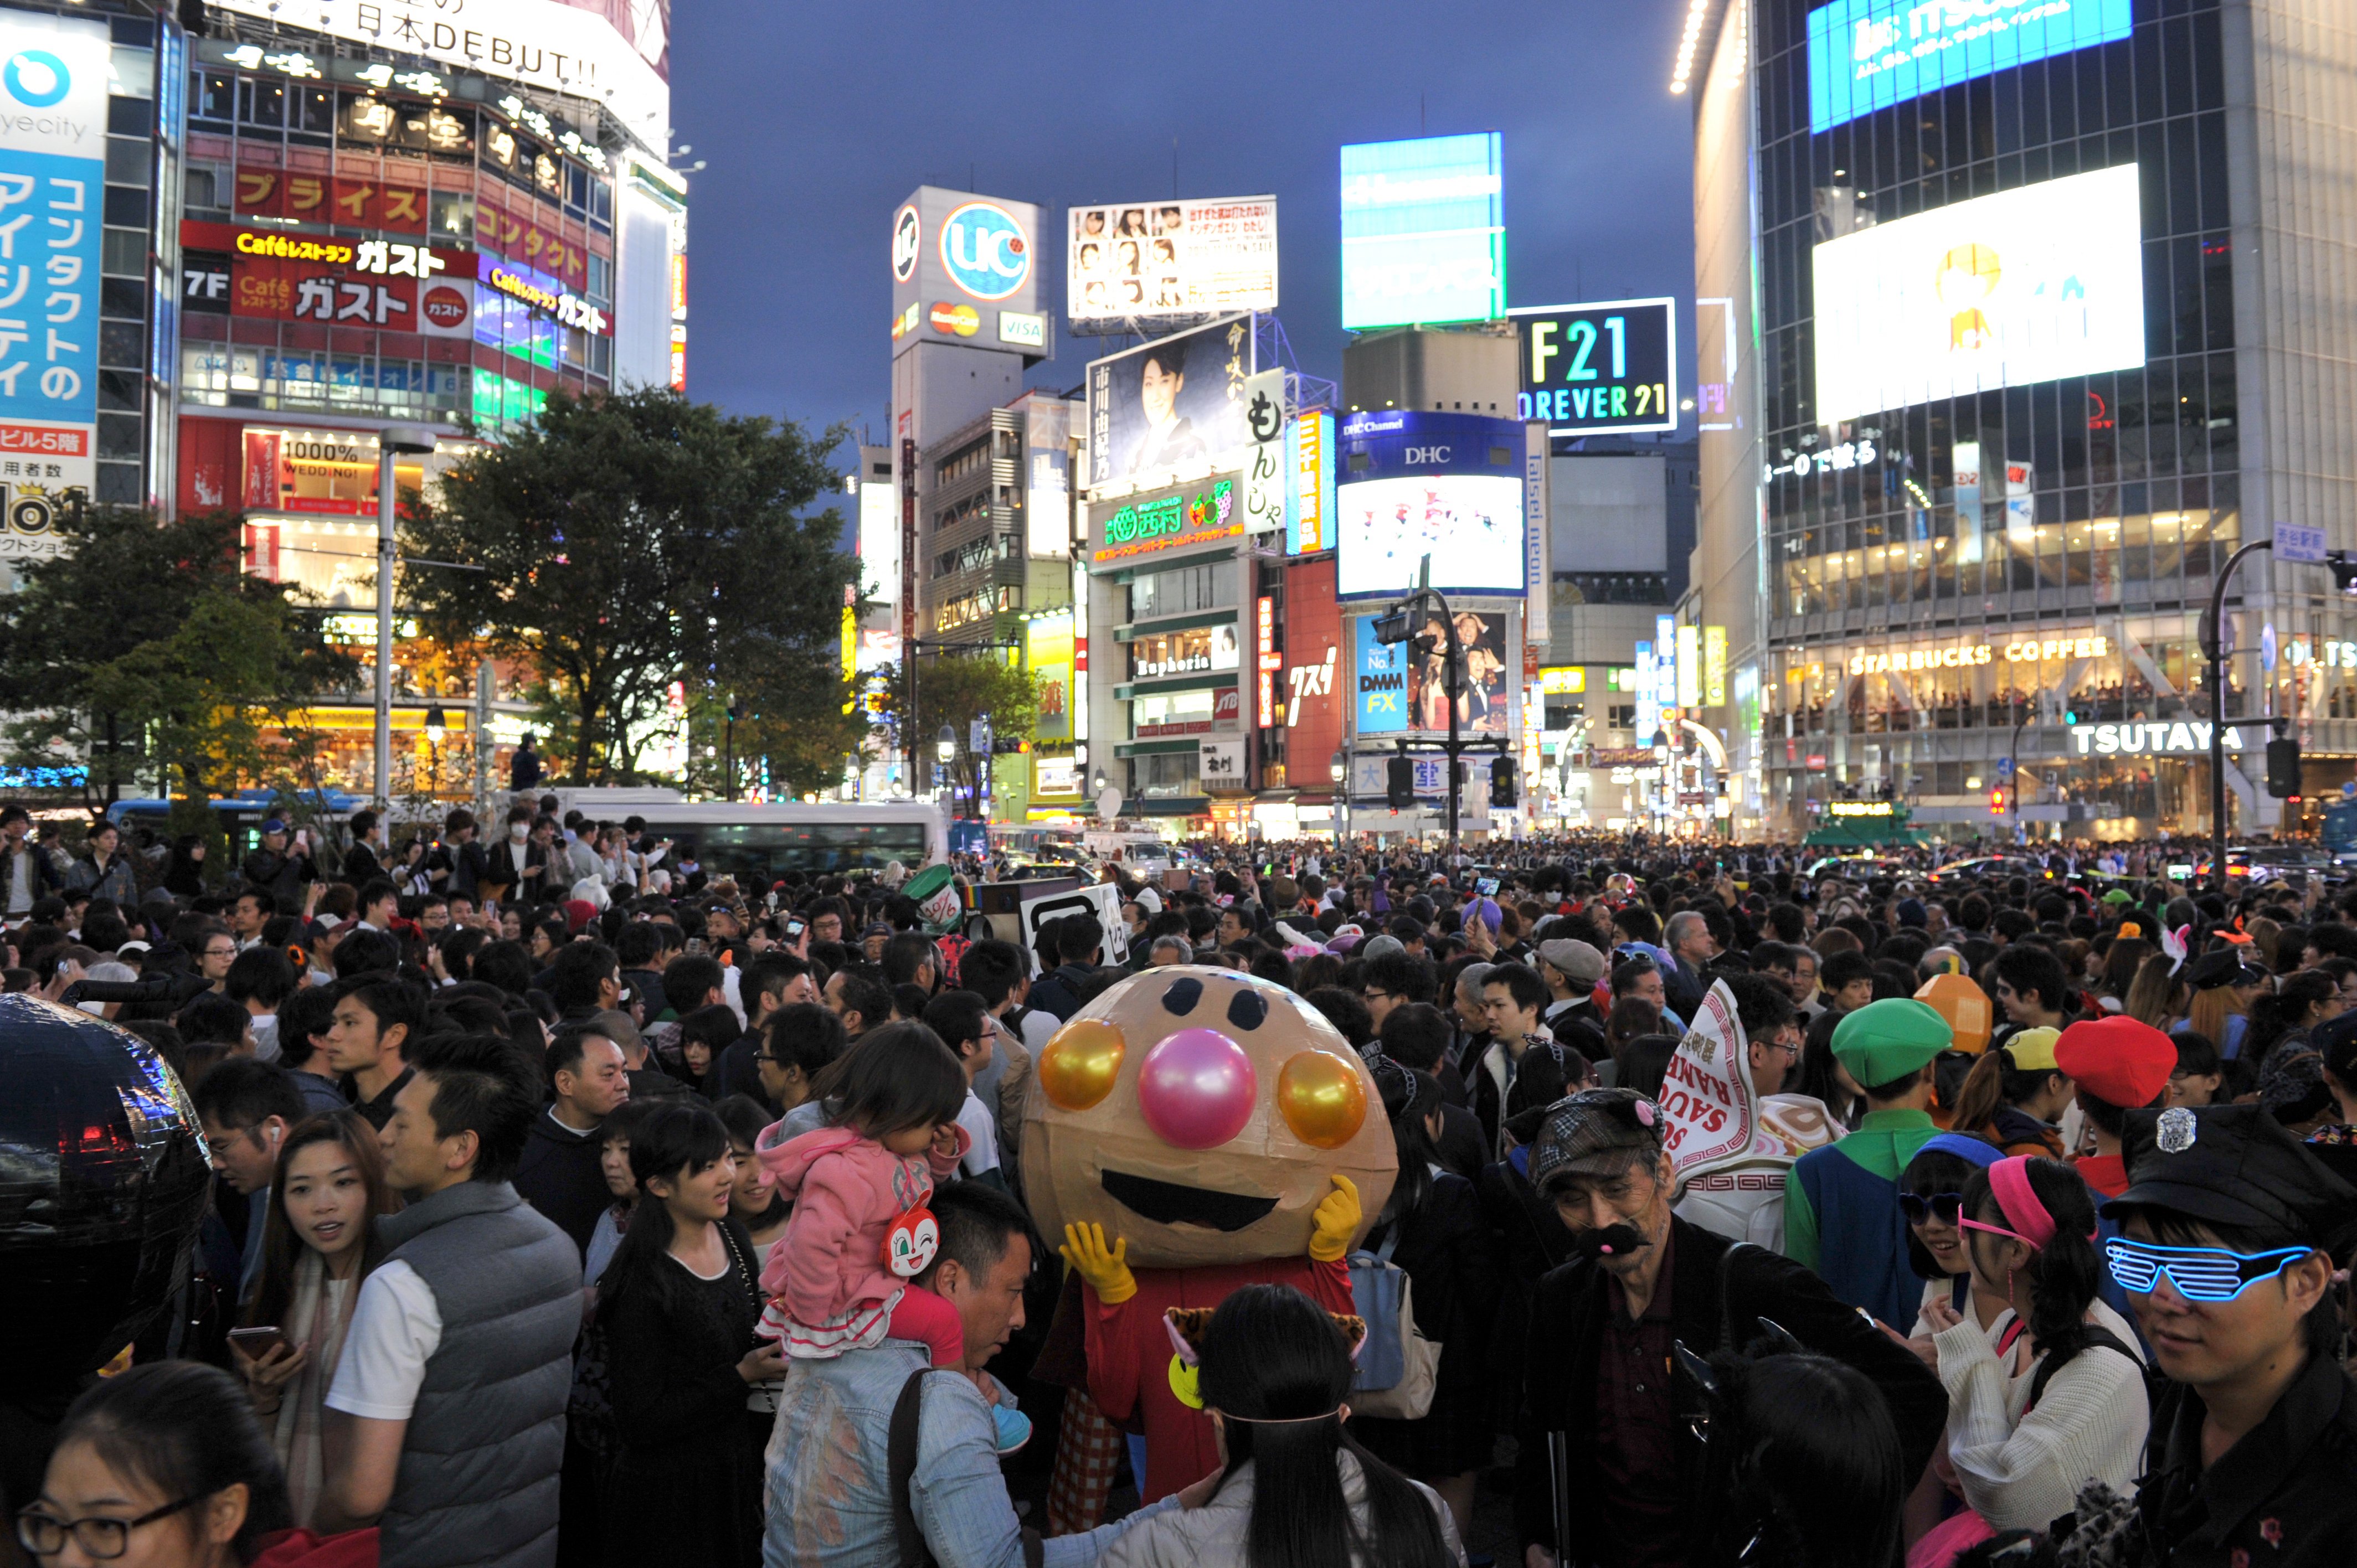 A large crowd of revelers mill about in Hachiko Square in front of JR Shibuya Station in Tokyo on Oct. 31, 2015. | YOSHIAKI MIUIRA